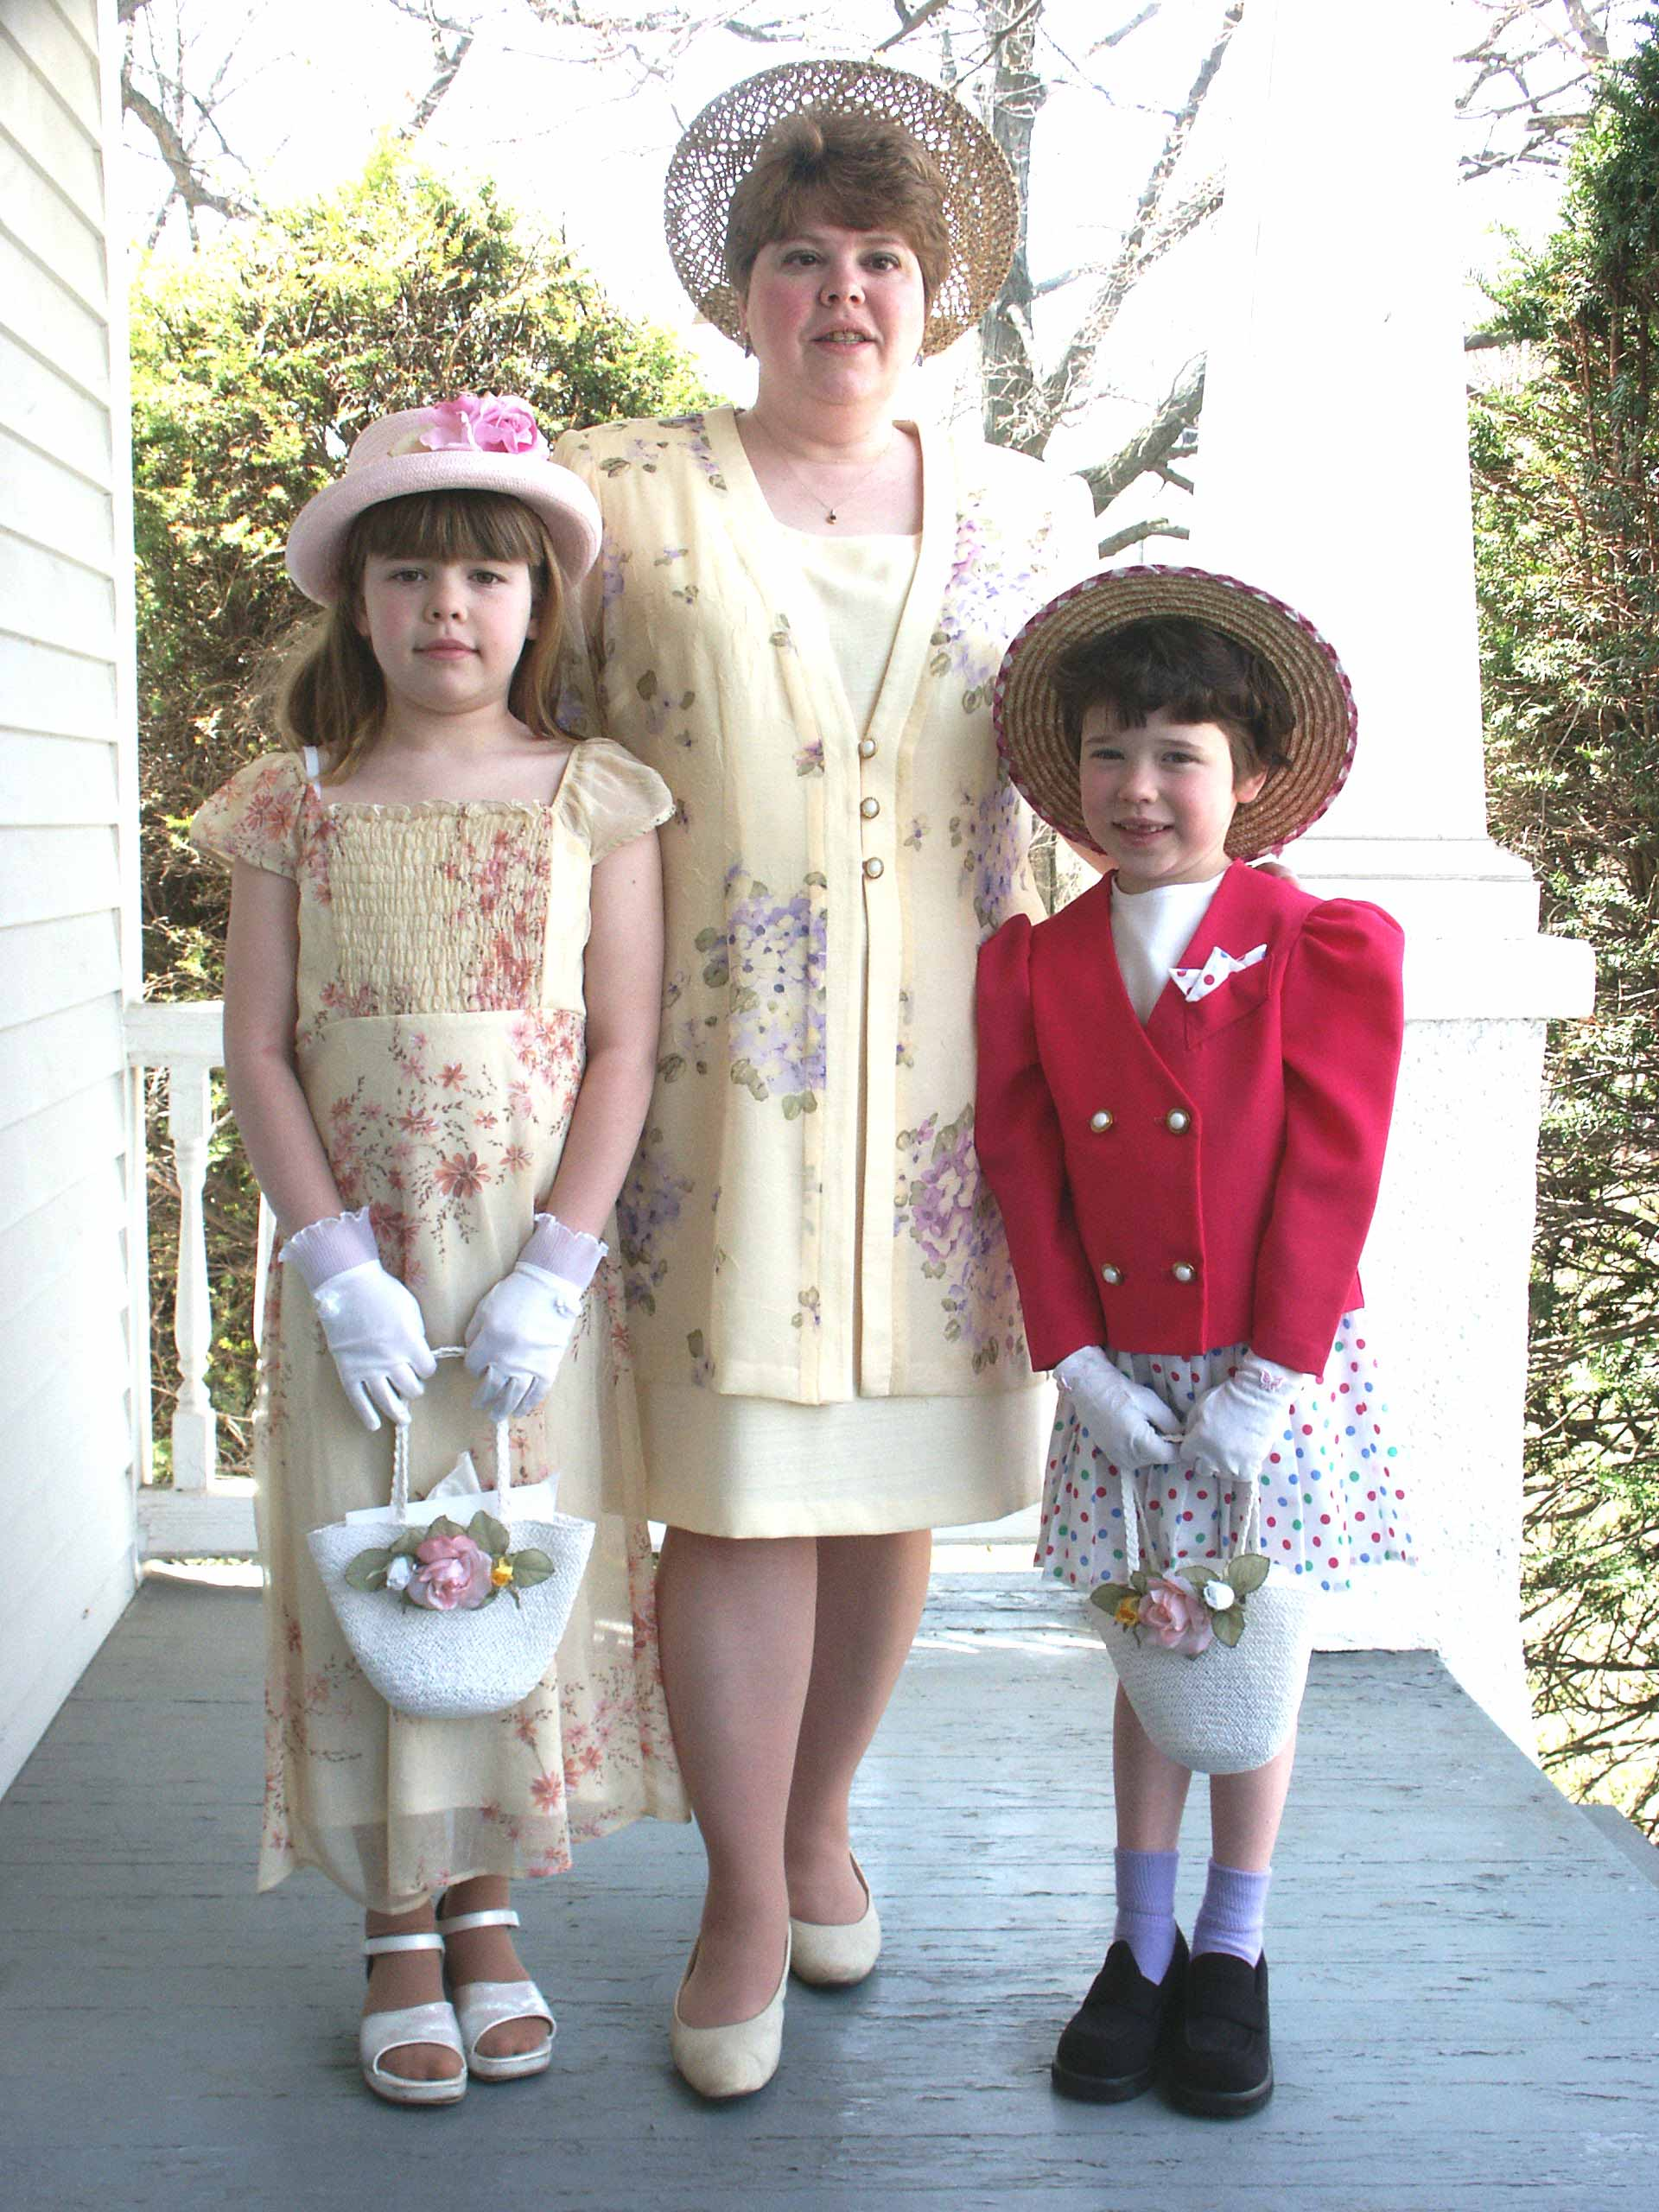 3 Easter ladies.JPG (435488 bytes)